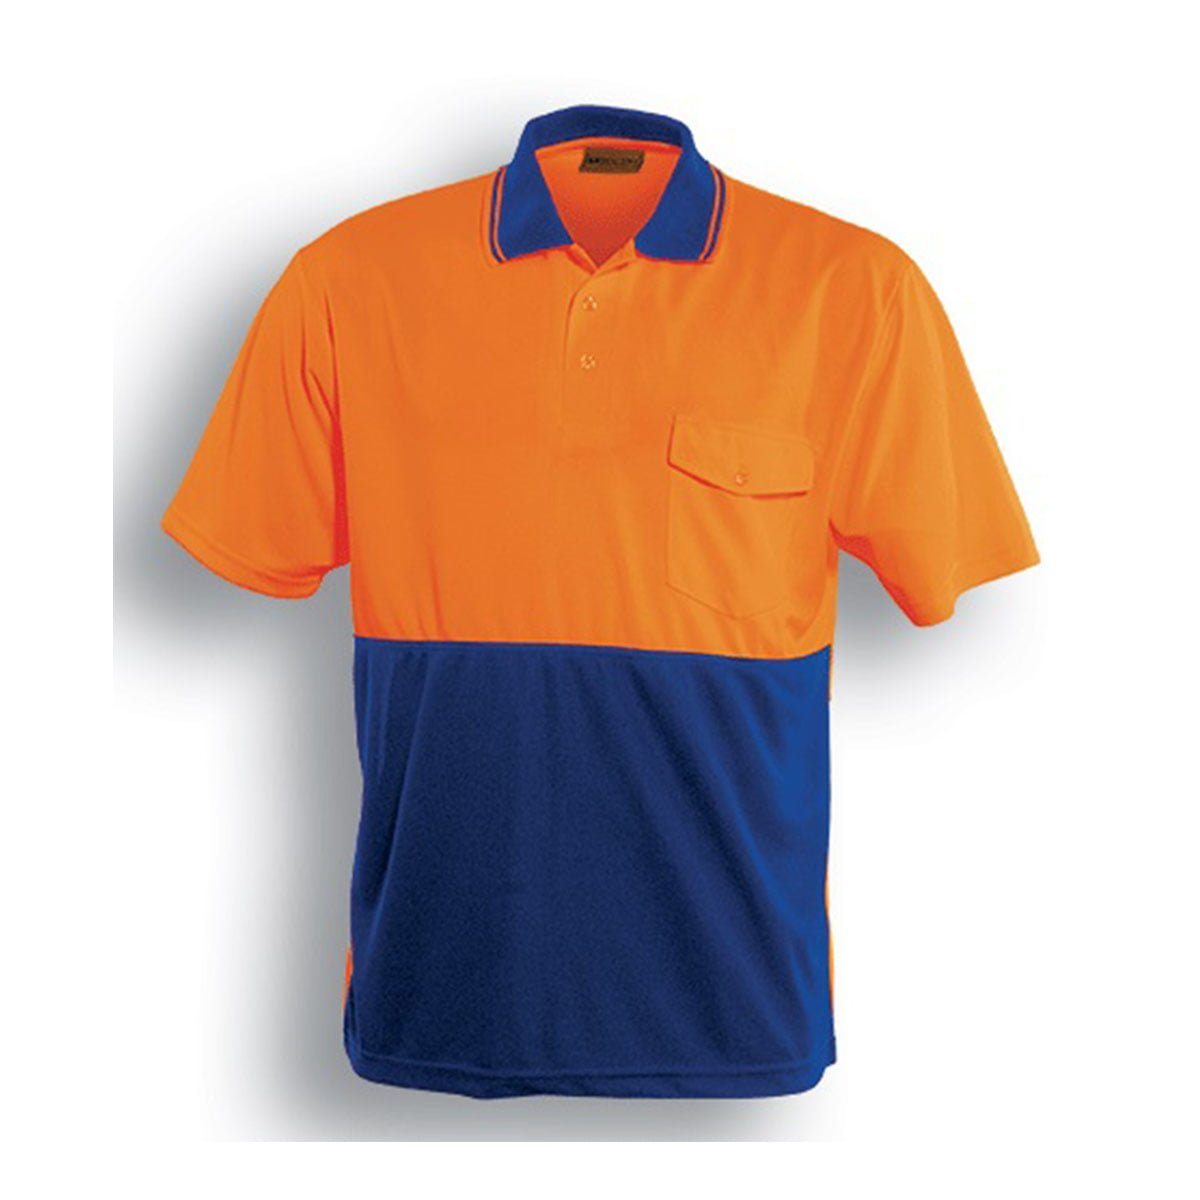 HI-VIS SAFETY POLO - SHORT SLEEVE